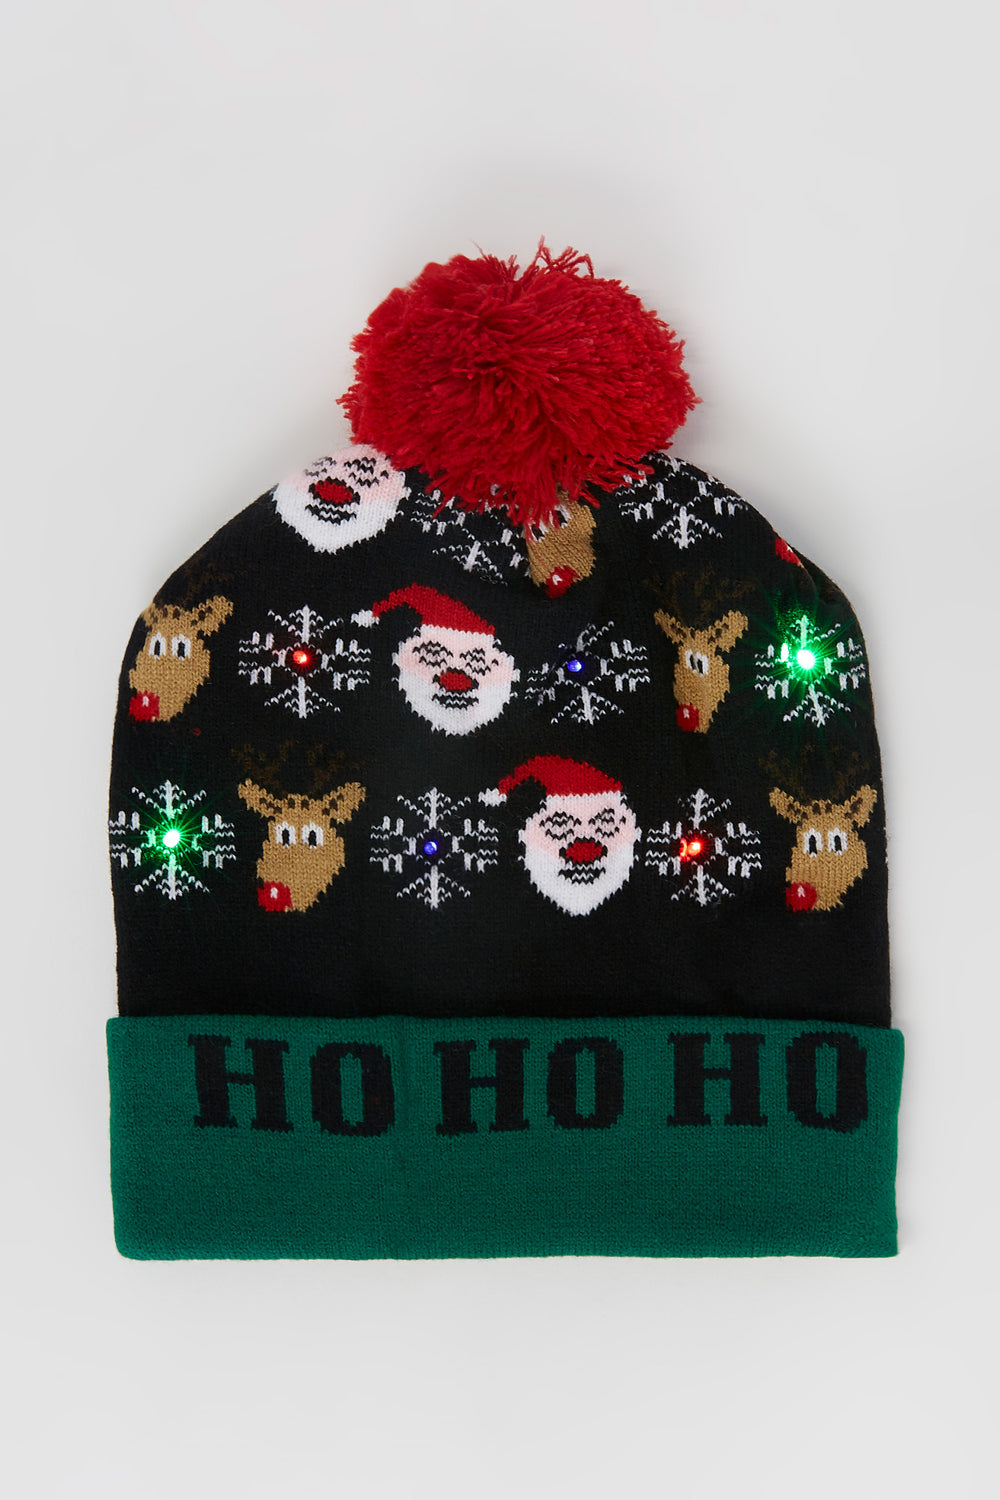 Light-Up Graphic Ho Ho Ho Ugly Christmas Beanie Green